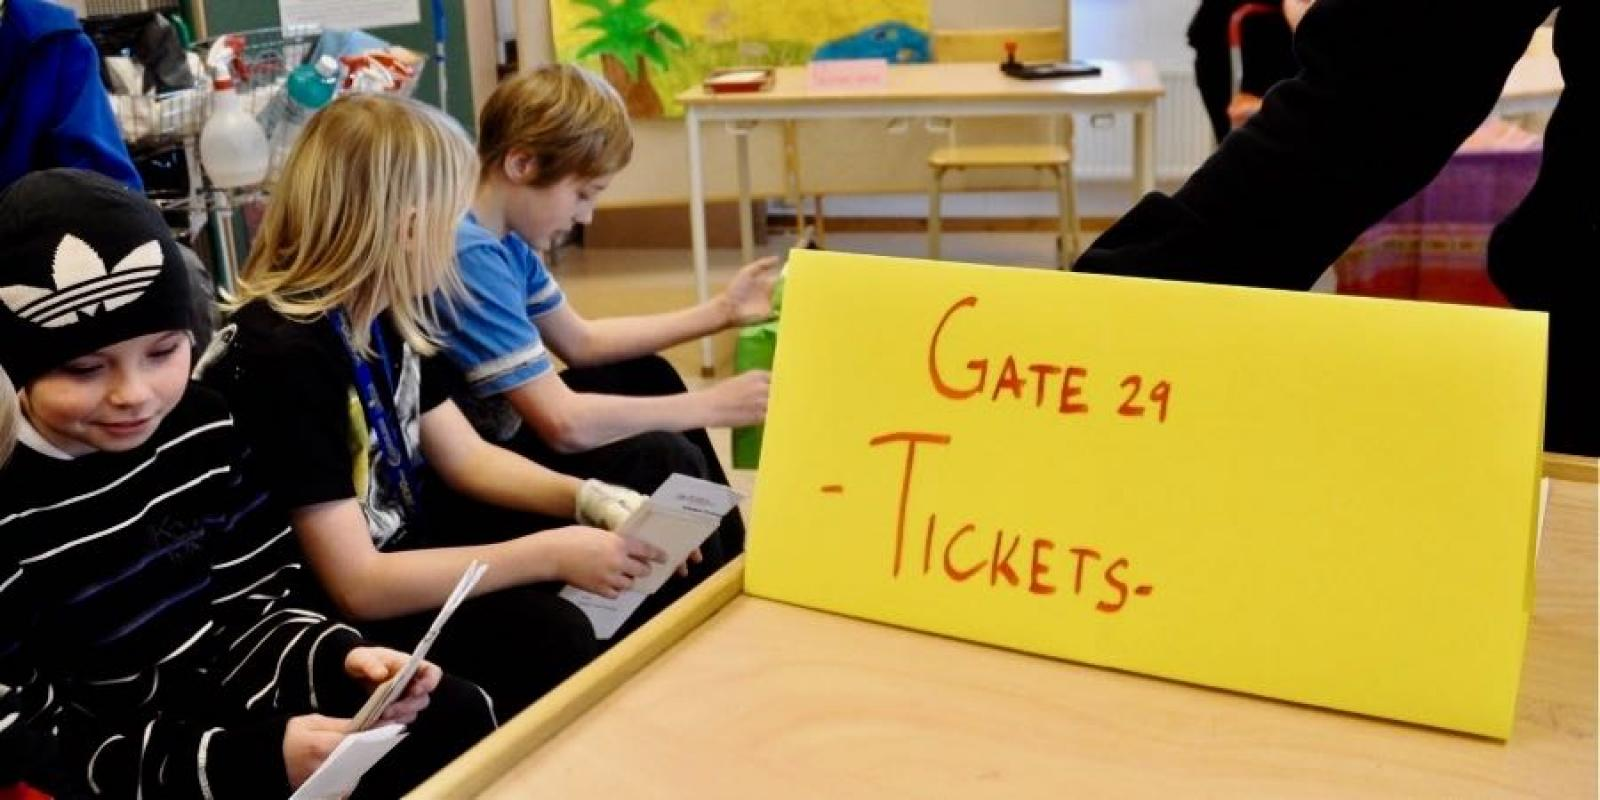 Sign marking an airport gate in a classroom